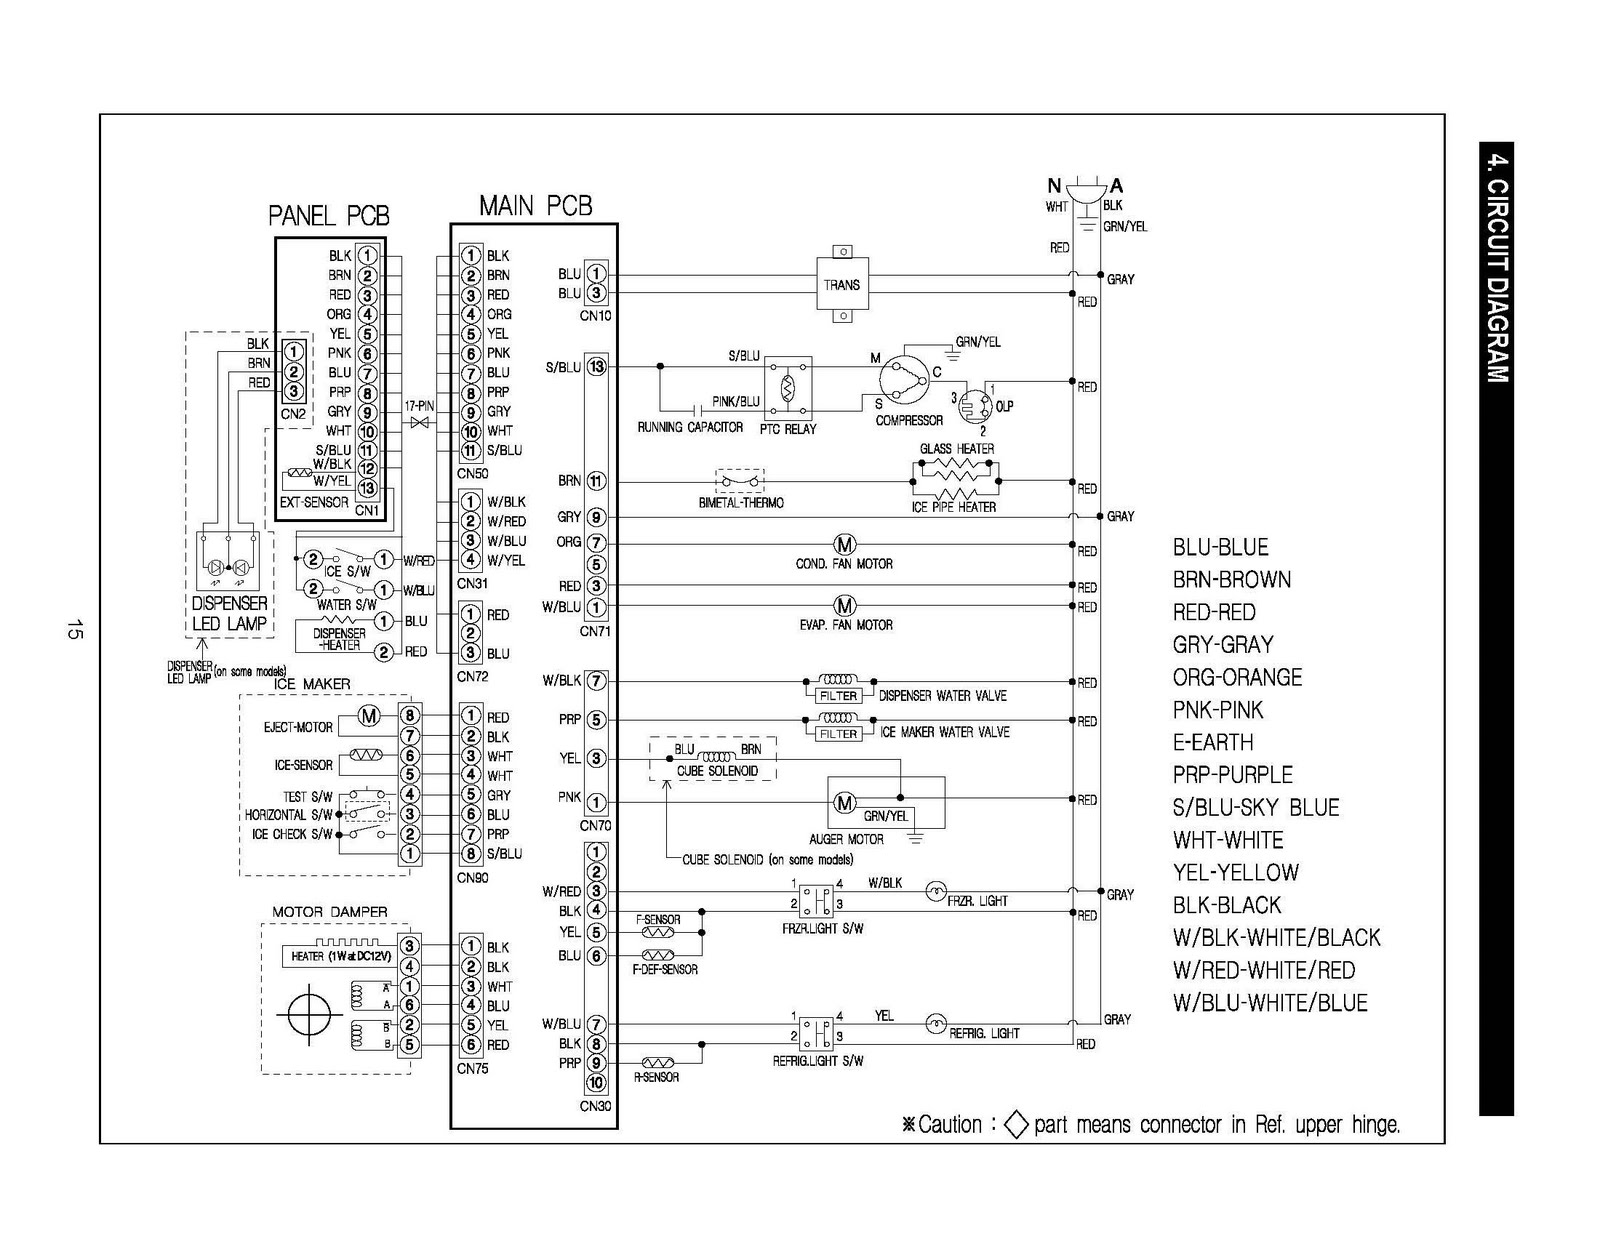 samsung refrigerator schematic diagram get free image about wiring diagram Refrigerator Coils Freezer Evaporator Coil Partially Freezes